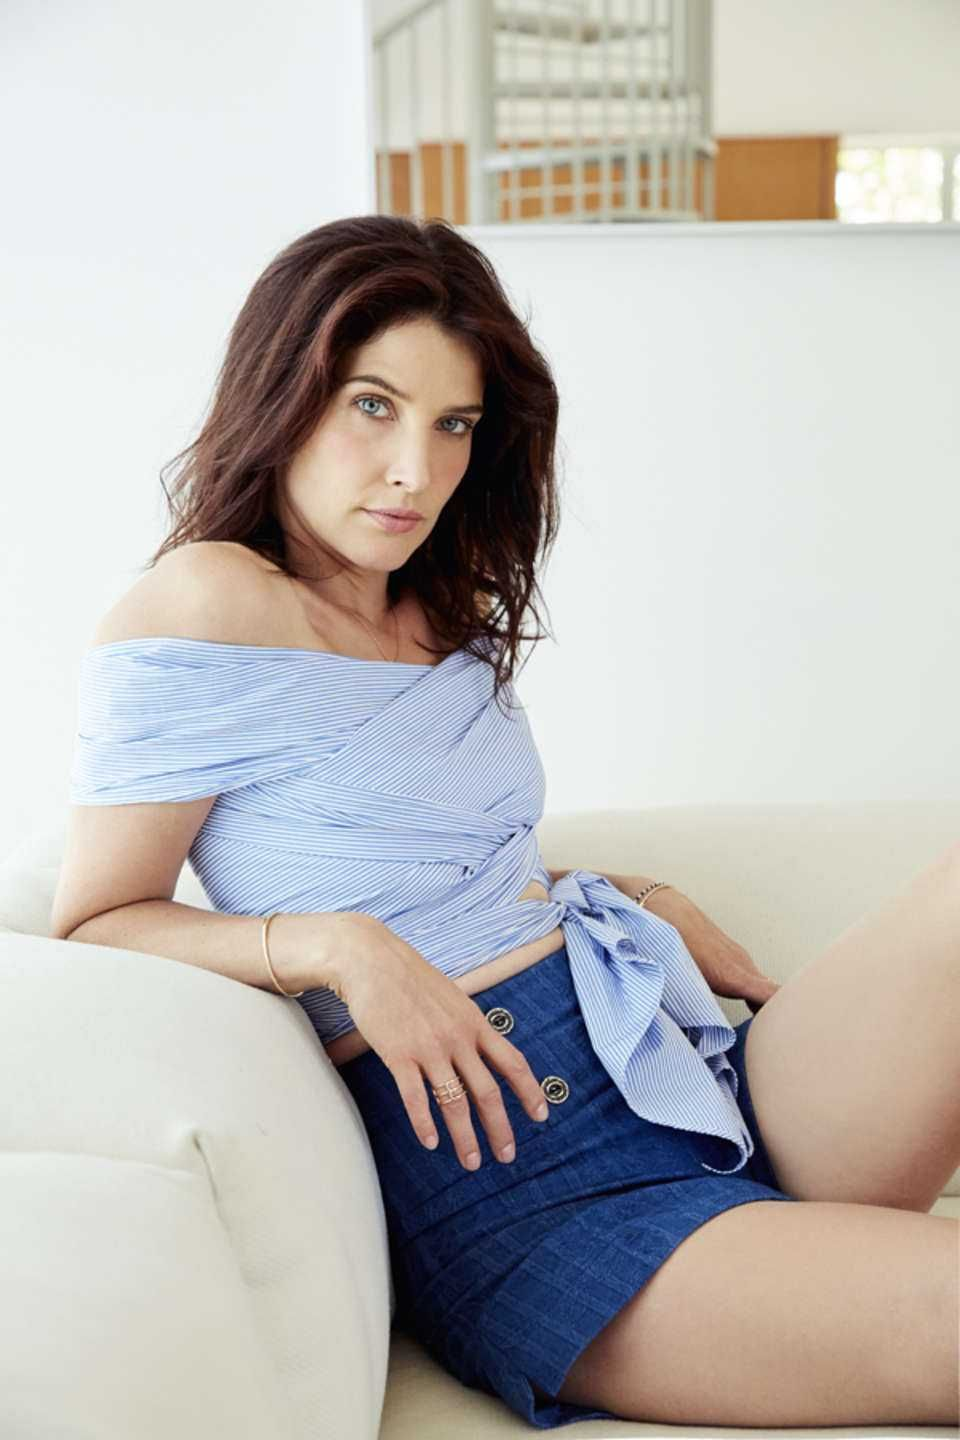 Sexy Cobie Smulders nude (97 foto and video), Pussy, Leaked, Selfie, lingerie 2020